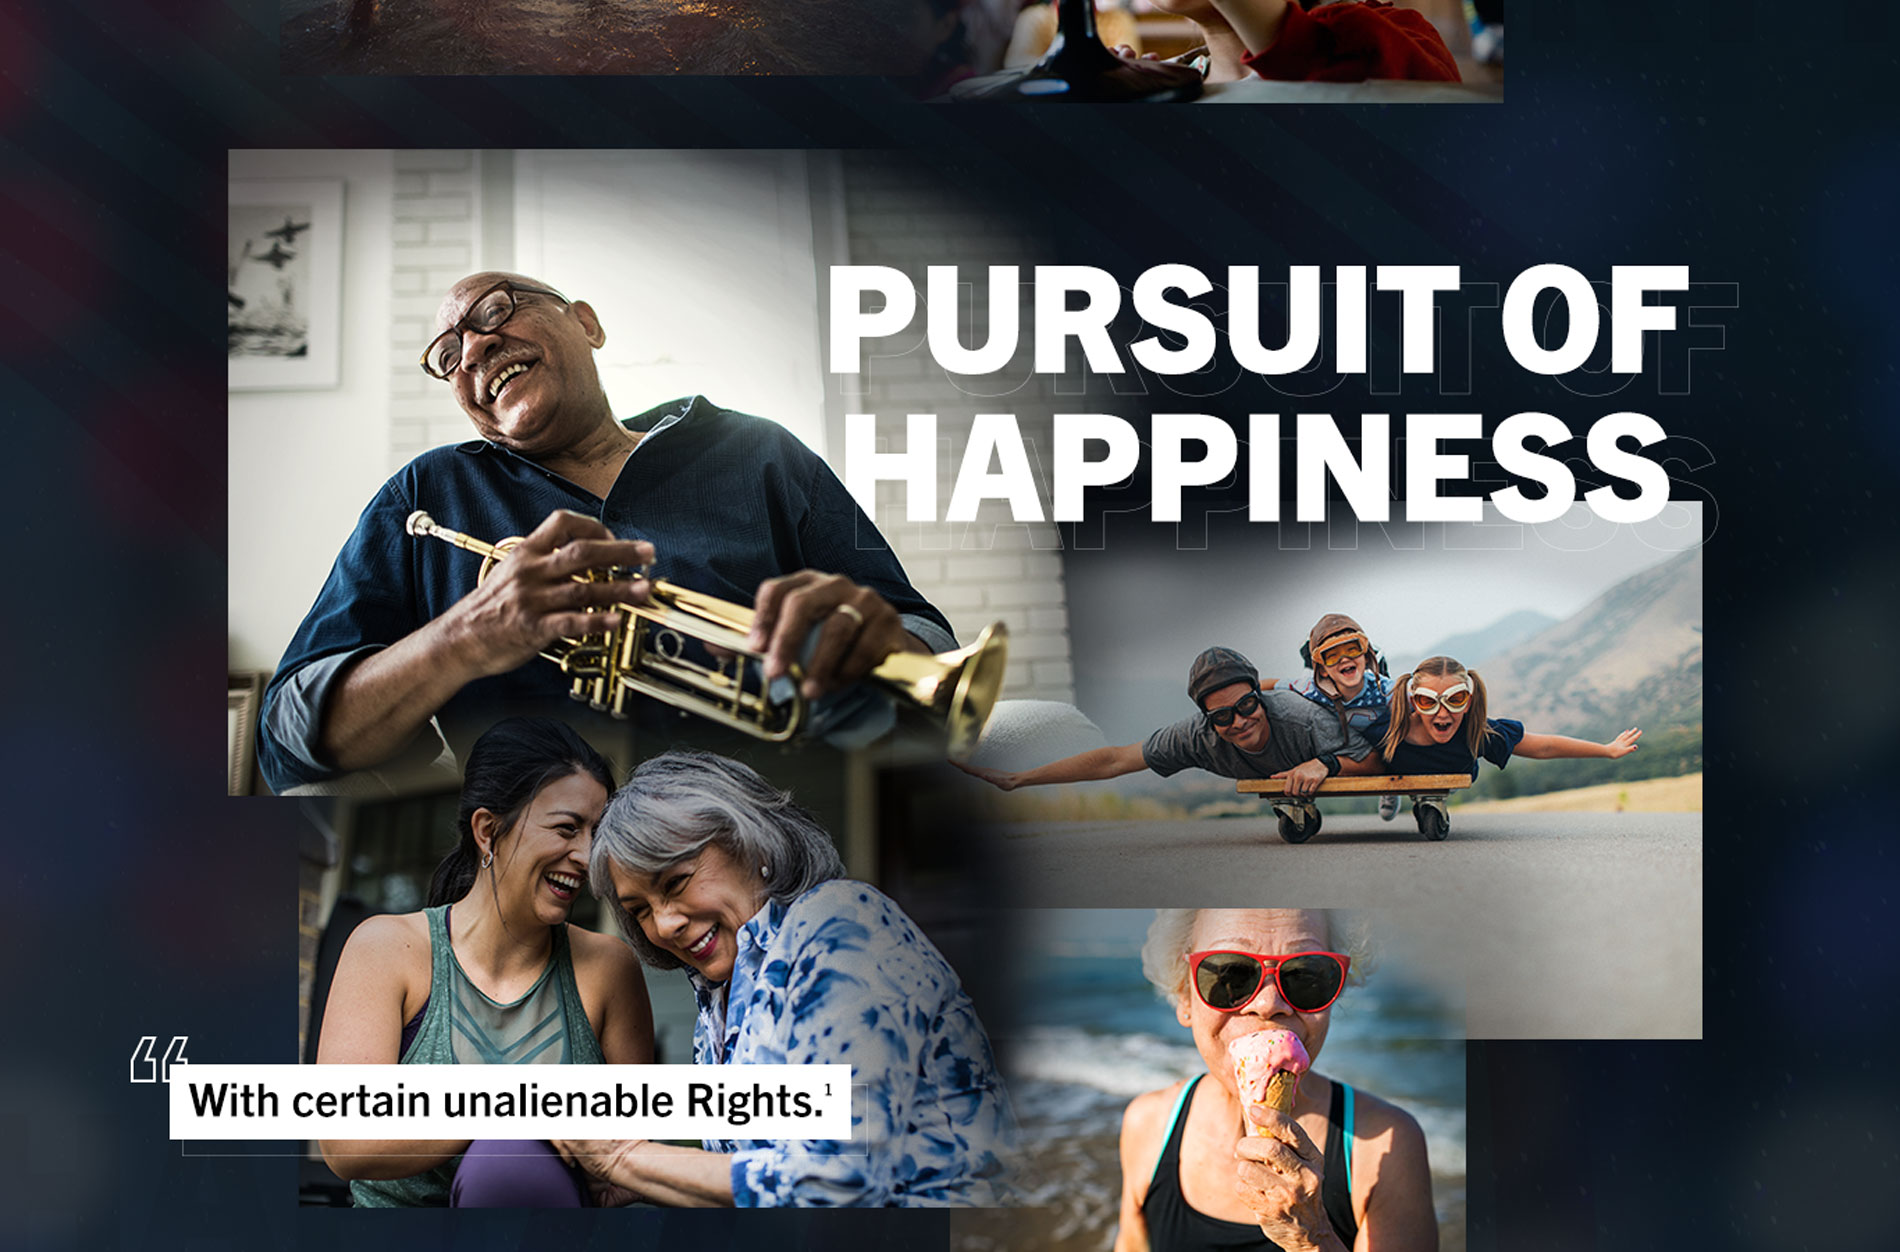 Pursuit of Happiness. With certain unalienable rights.